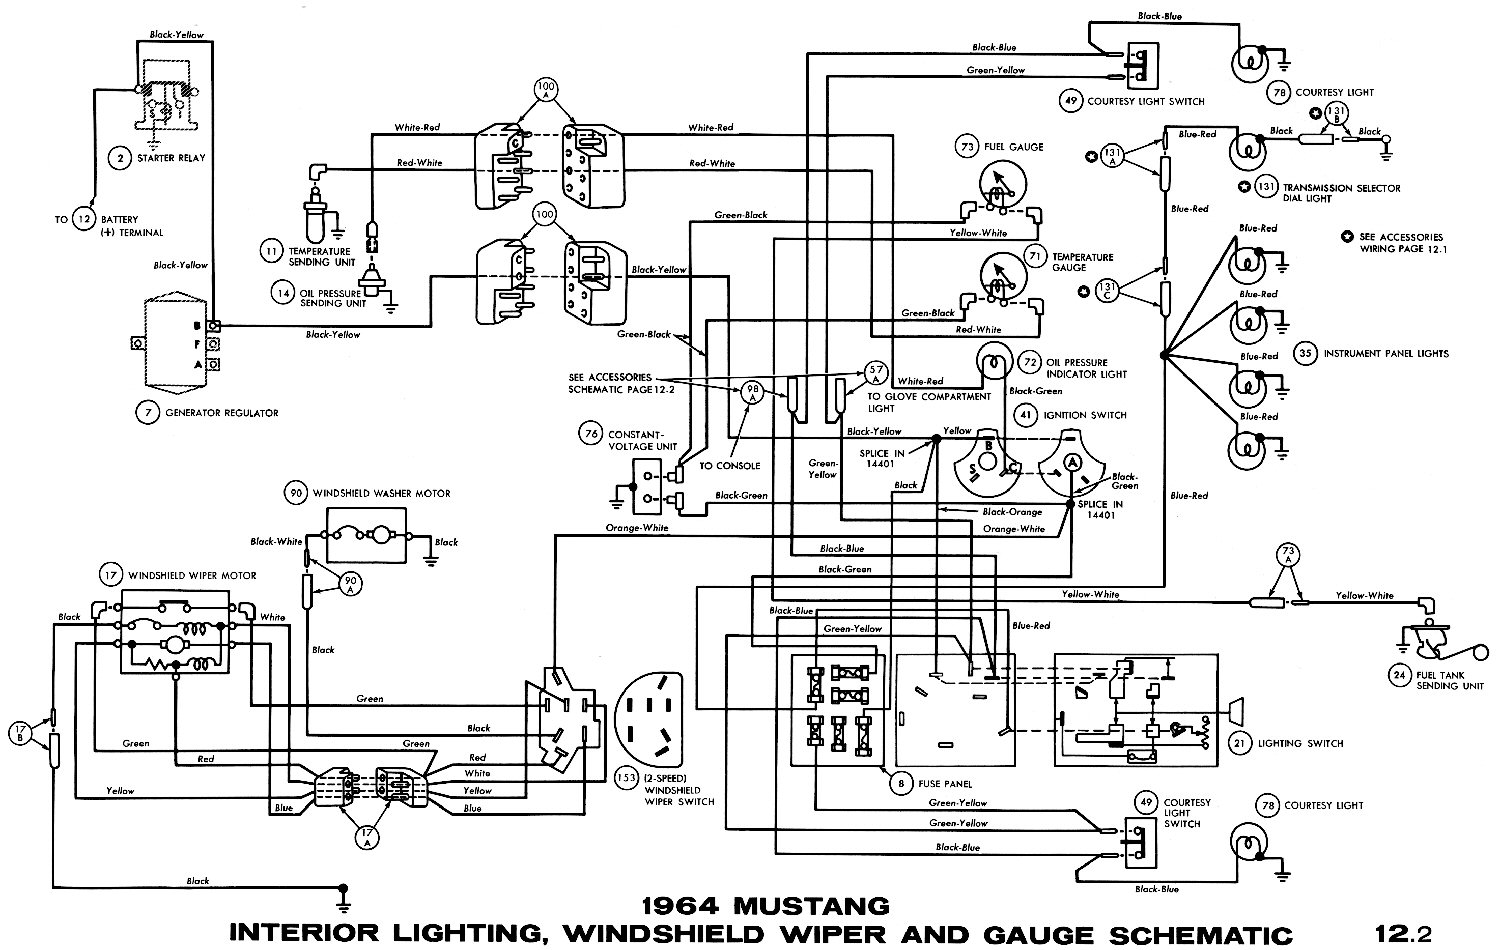 hight resolution of 1970 mustang radio wiring diagram schematic wiring diagrams schema 1965 mustang color wiring diagram 1969 mustang electrical wiring diagram